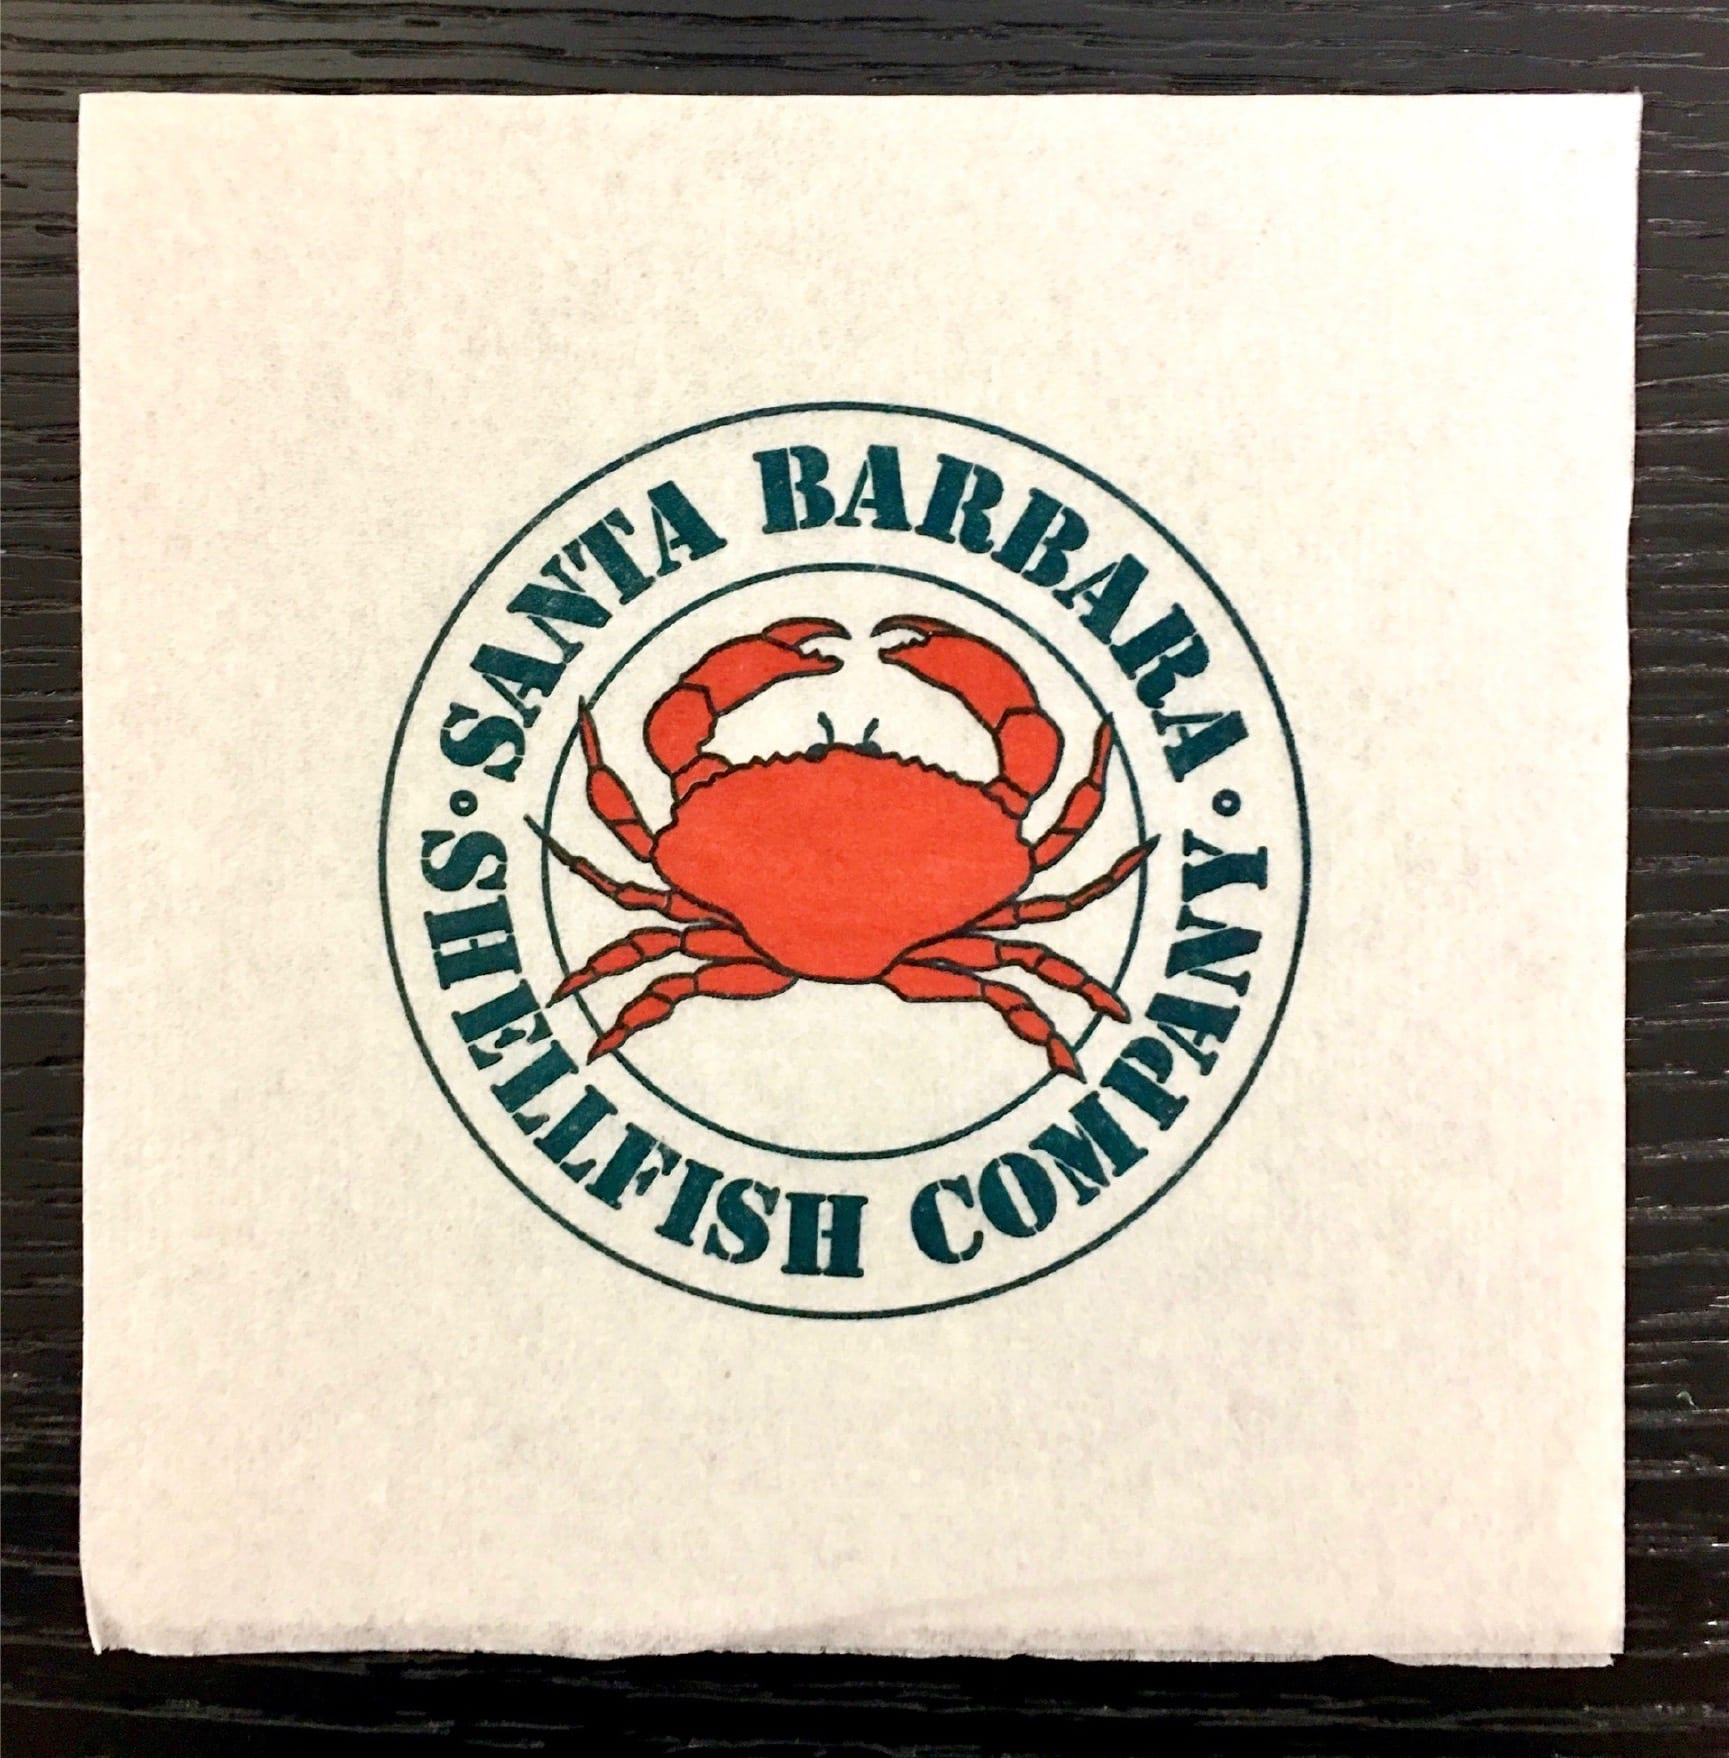 Santa Barbara Shellfish Company, 2 color custom napkin for foodservice industry